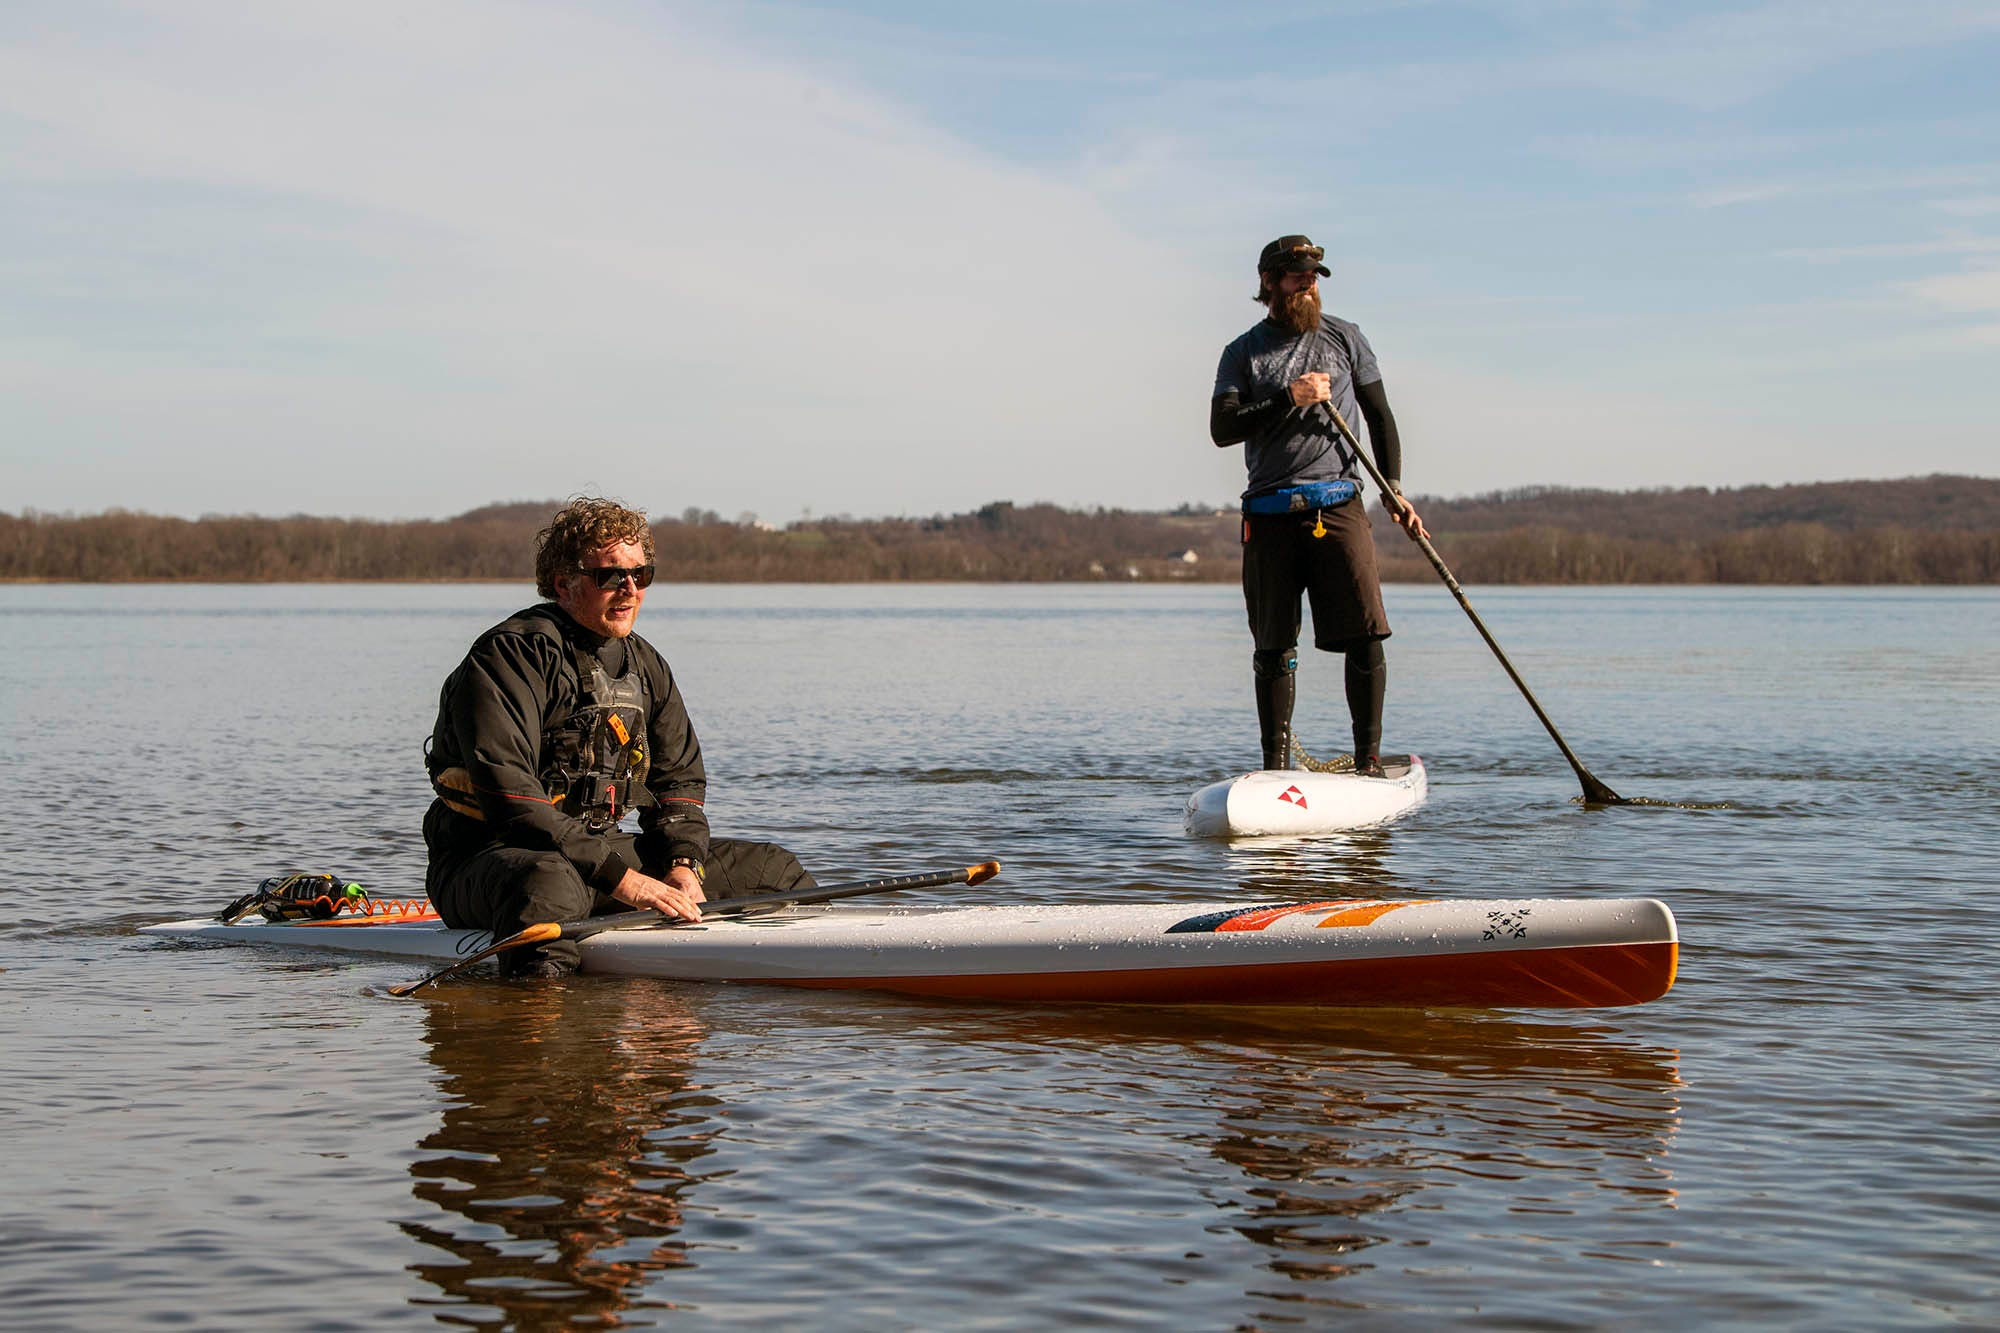 Devin Winand, left, sits on his board next to Josh Hill as they prepare to head back south along the Susquehanna River at Long Level in York County.